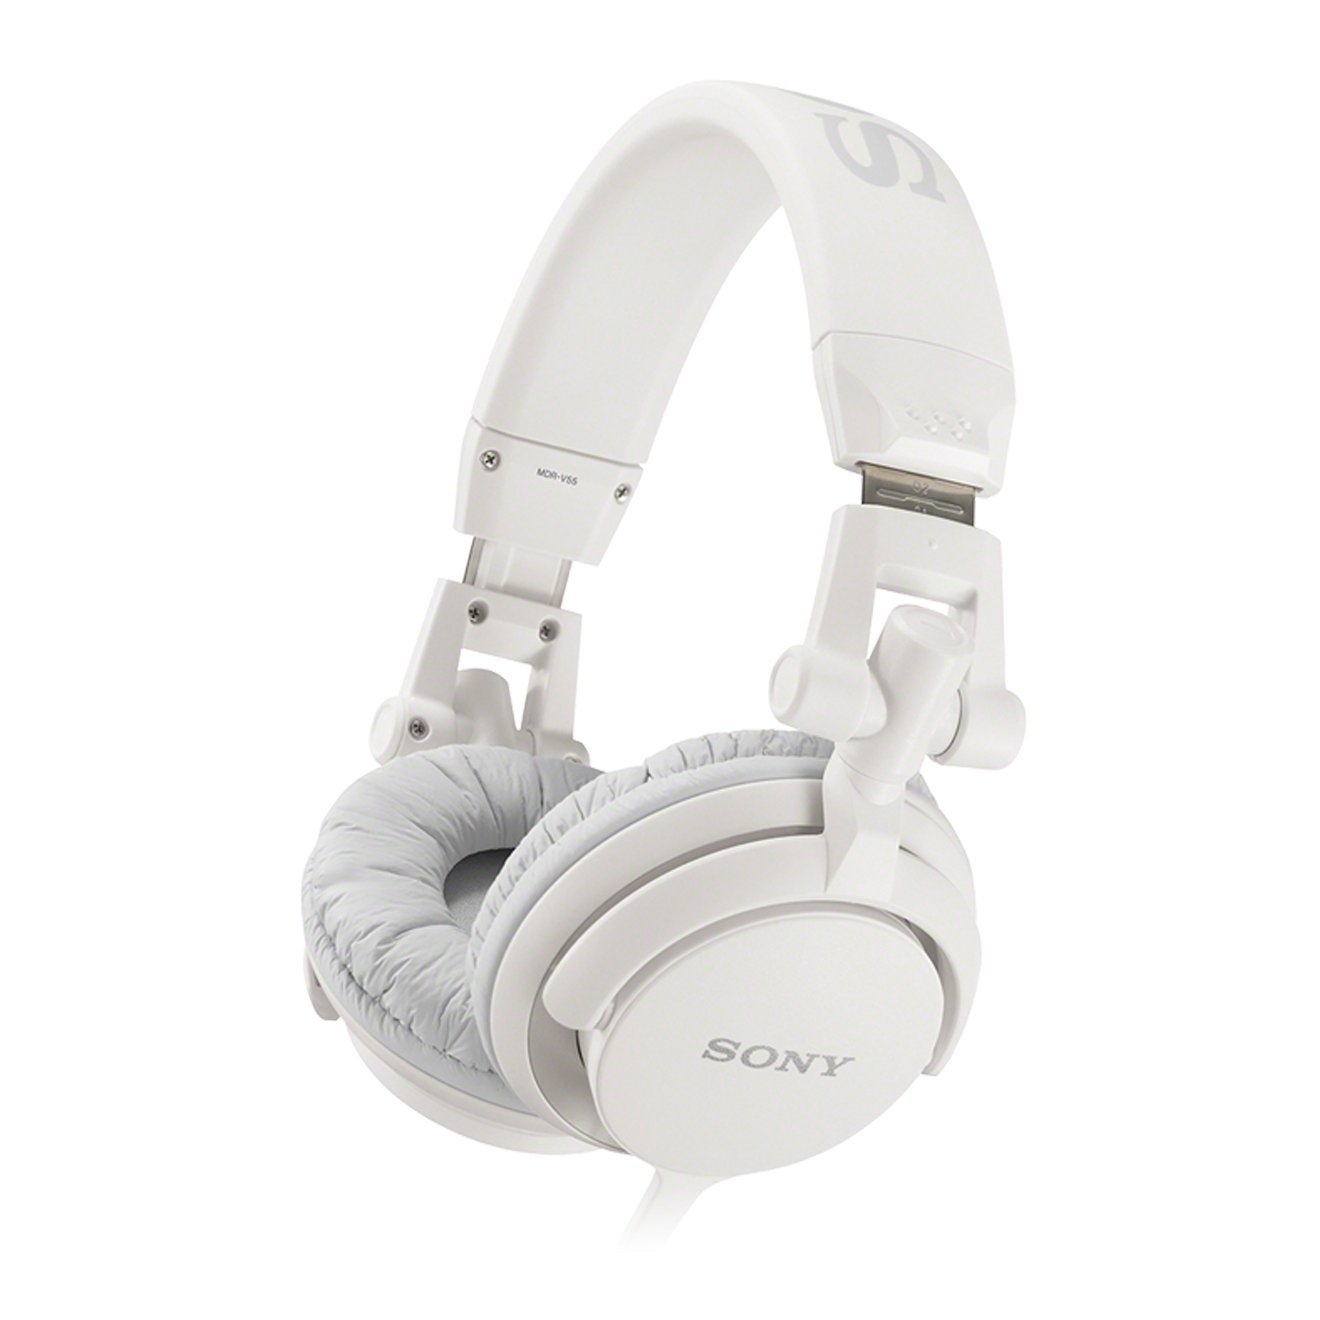 Sony MDR-V55 DJ Stereo Headphones - White  Amazon.co.uk  Electronics 87b4ab559c5a